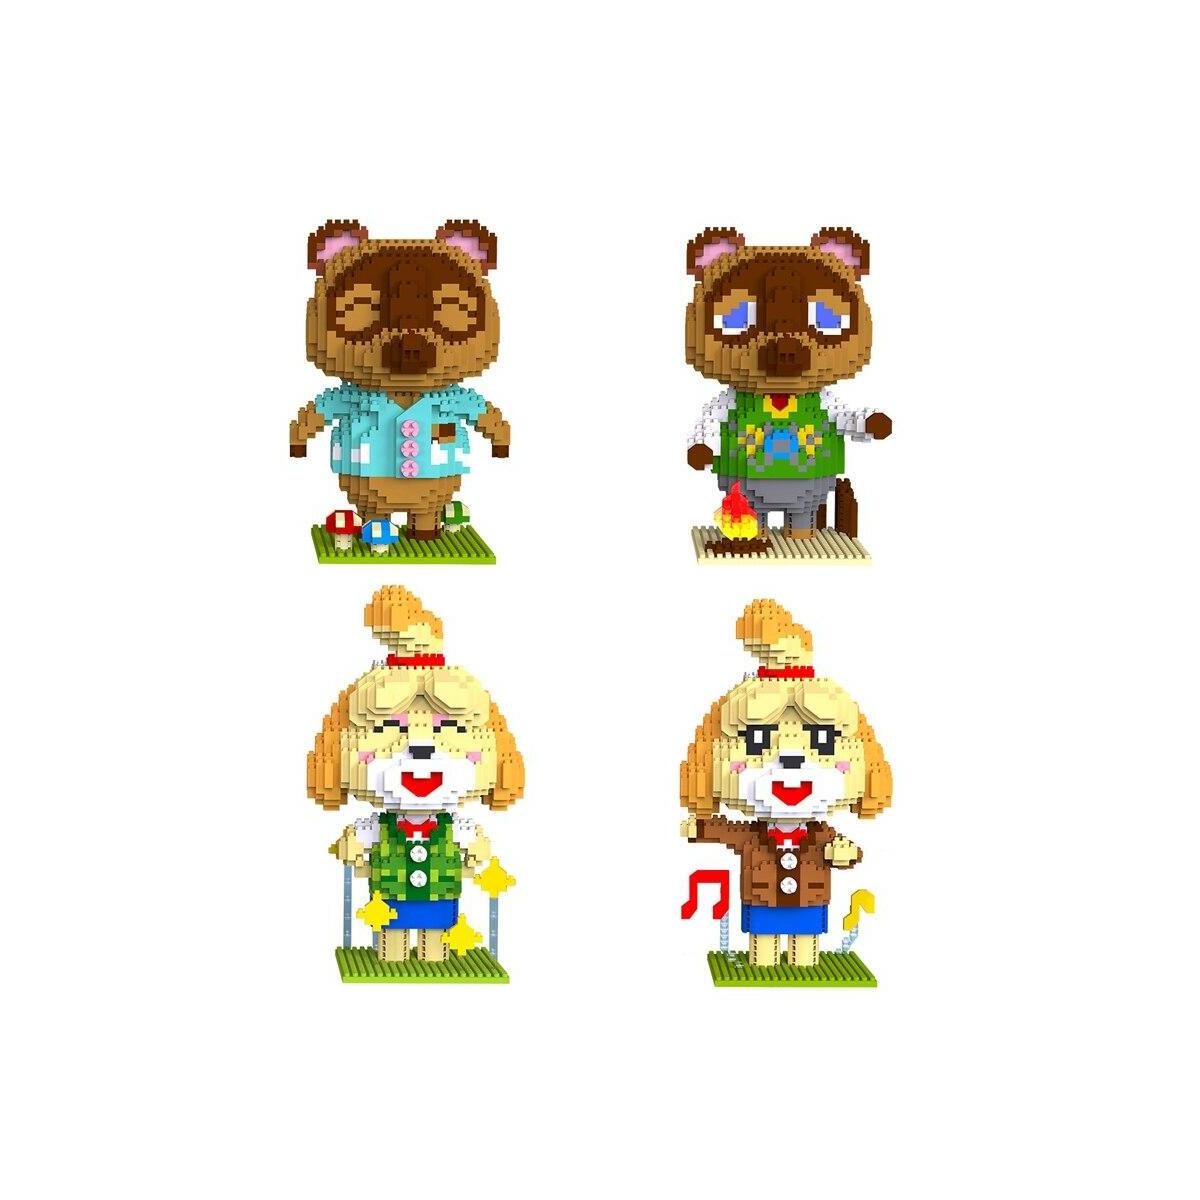 Animal Crossing Tom Nook and Isabelle Lego Style Building Block Set 1224pcs+, 6004-4 / 8in